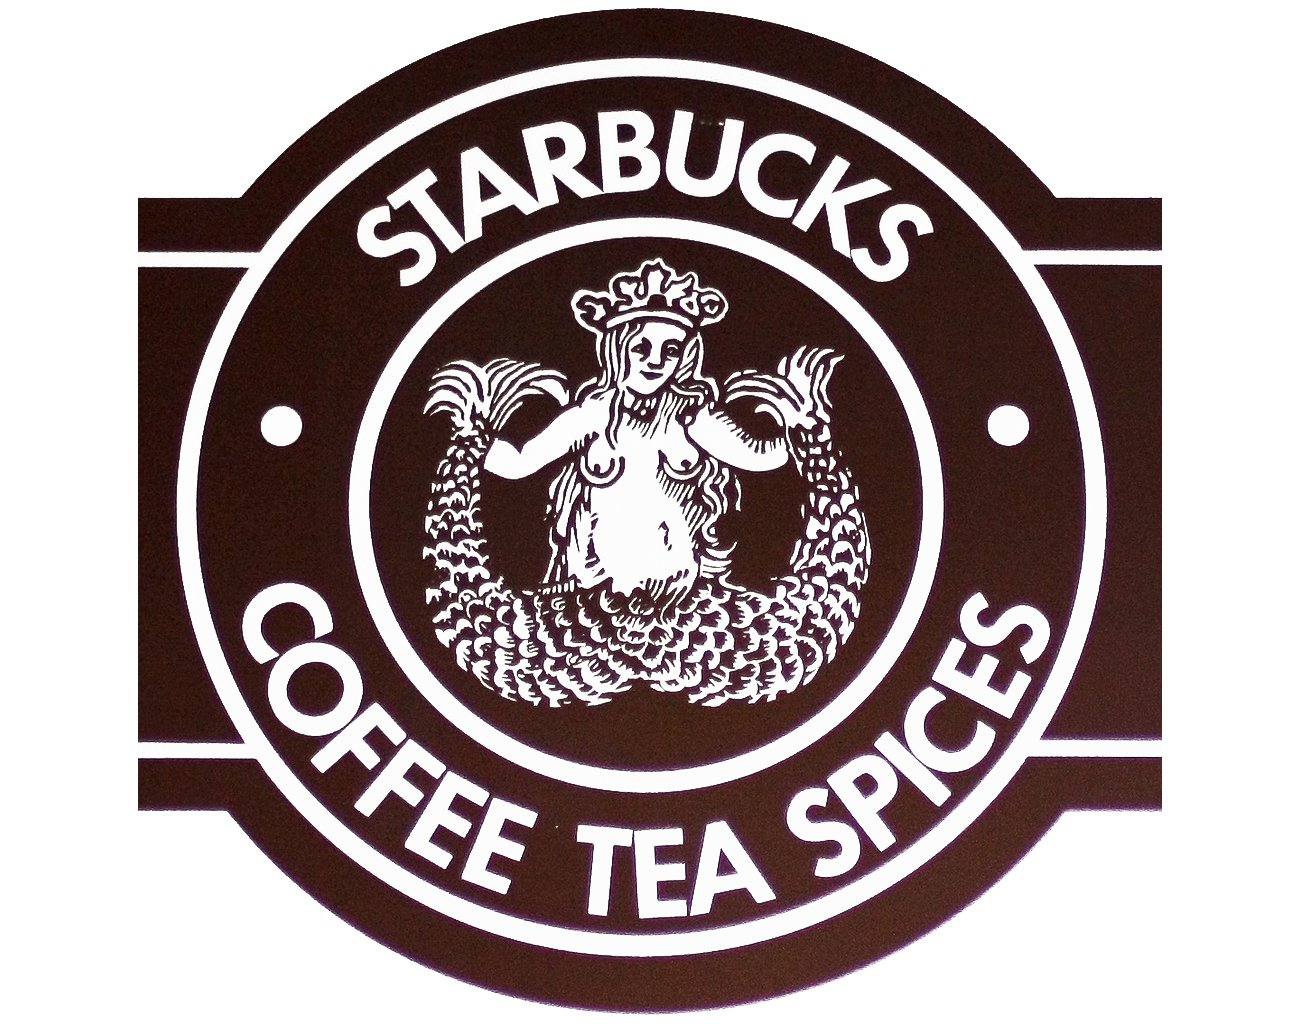 Original Starbucks Coffee Starbucks Logo